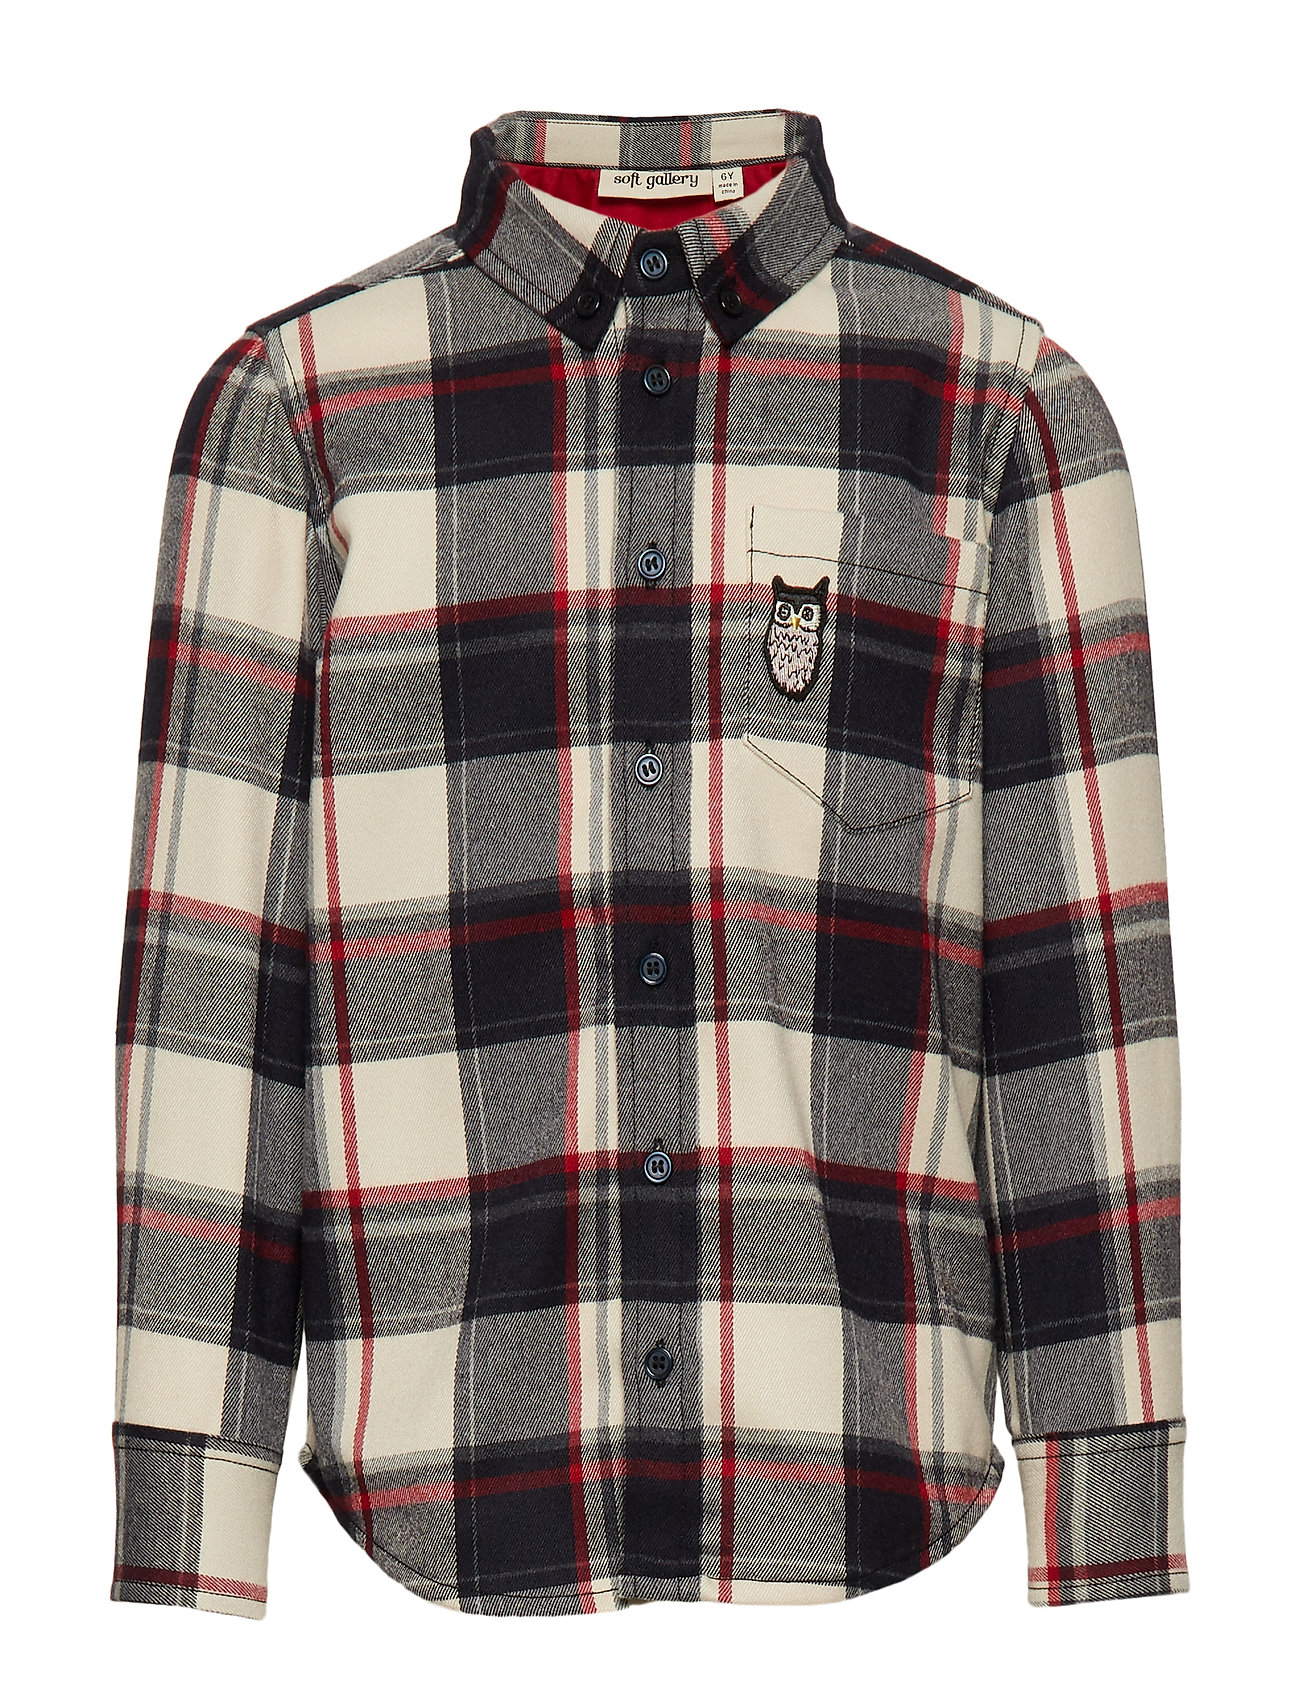 Soft Gallery Bentley Shirt - RBW CHECK, OWL PATCH GREY